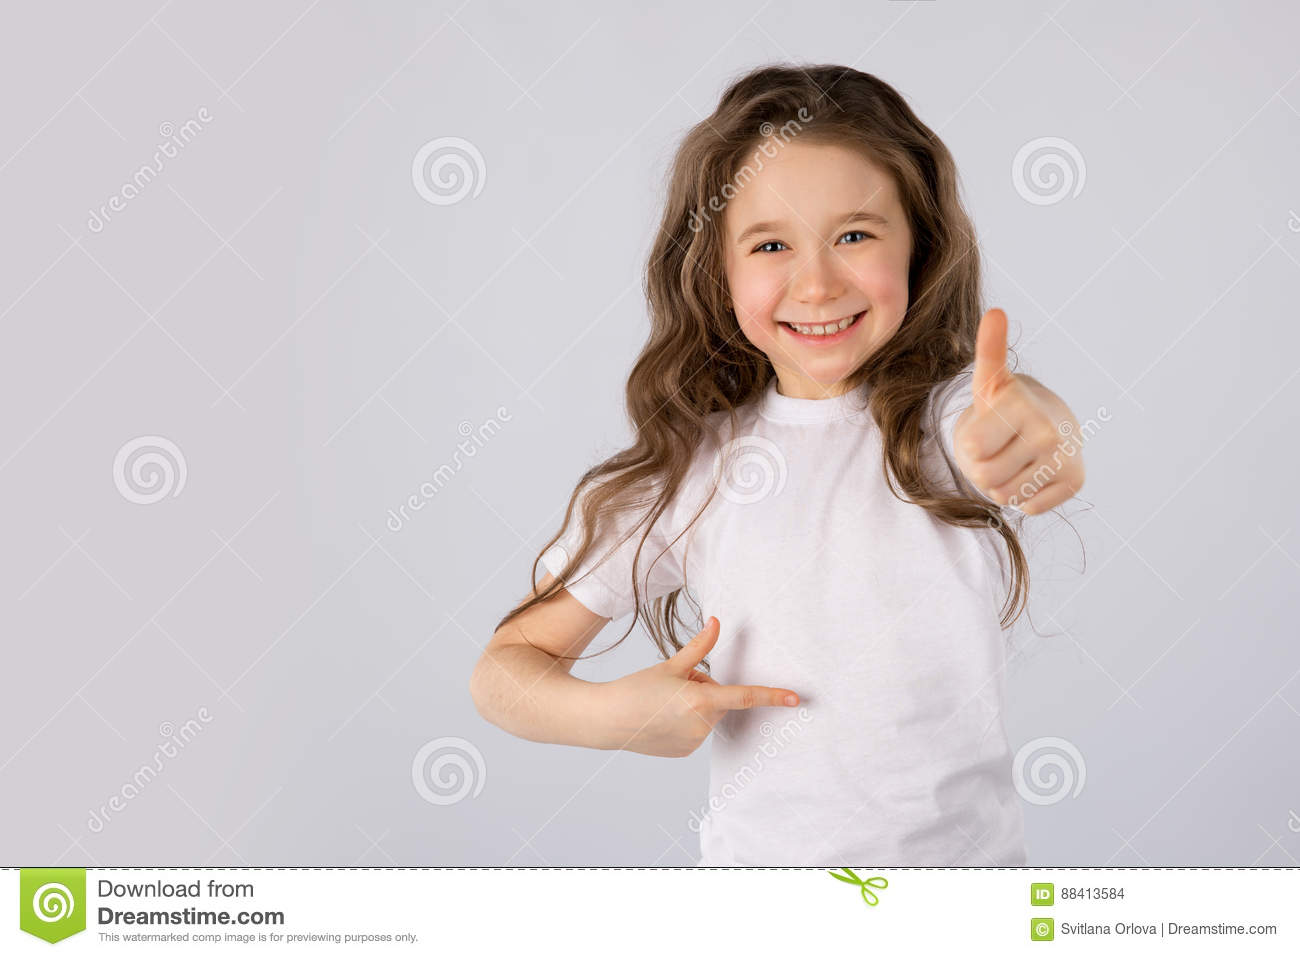 Little girl showing thumbs up gesture in a white T-shirt on white background.